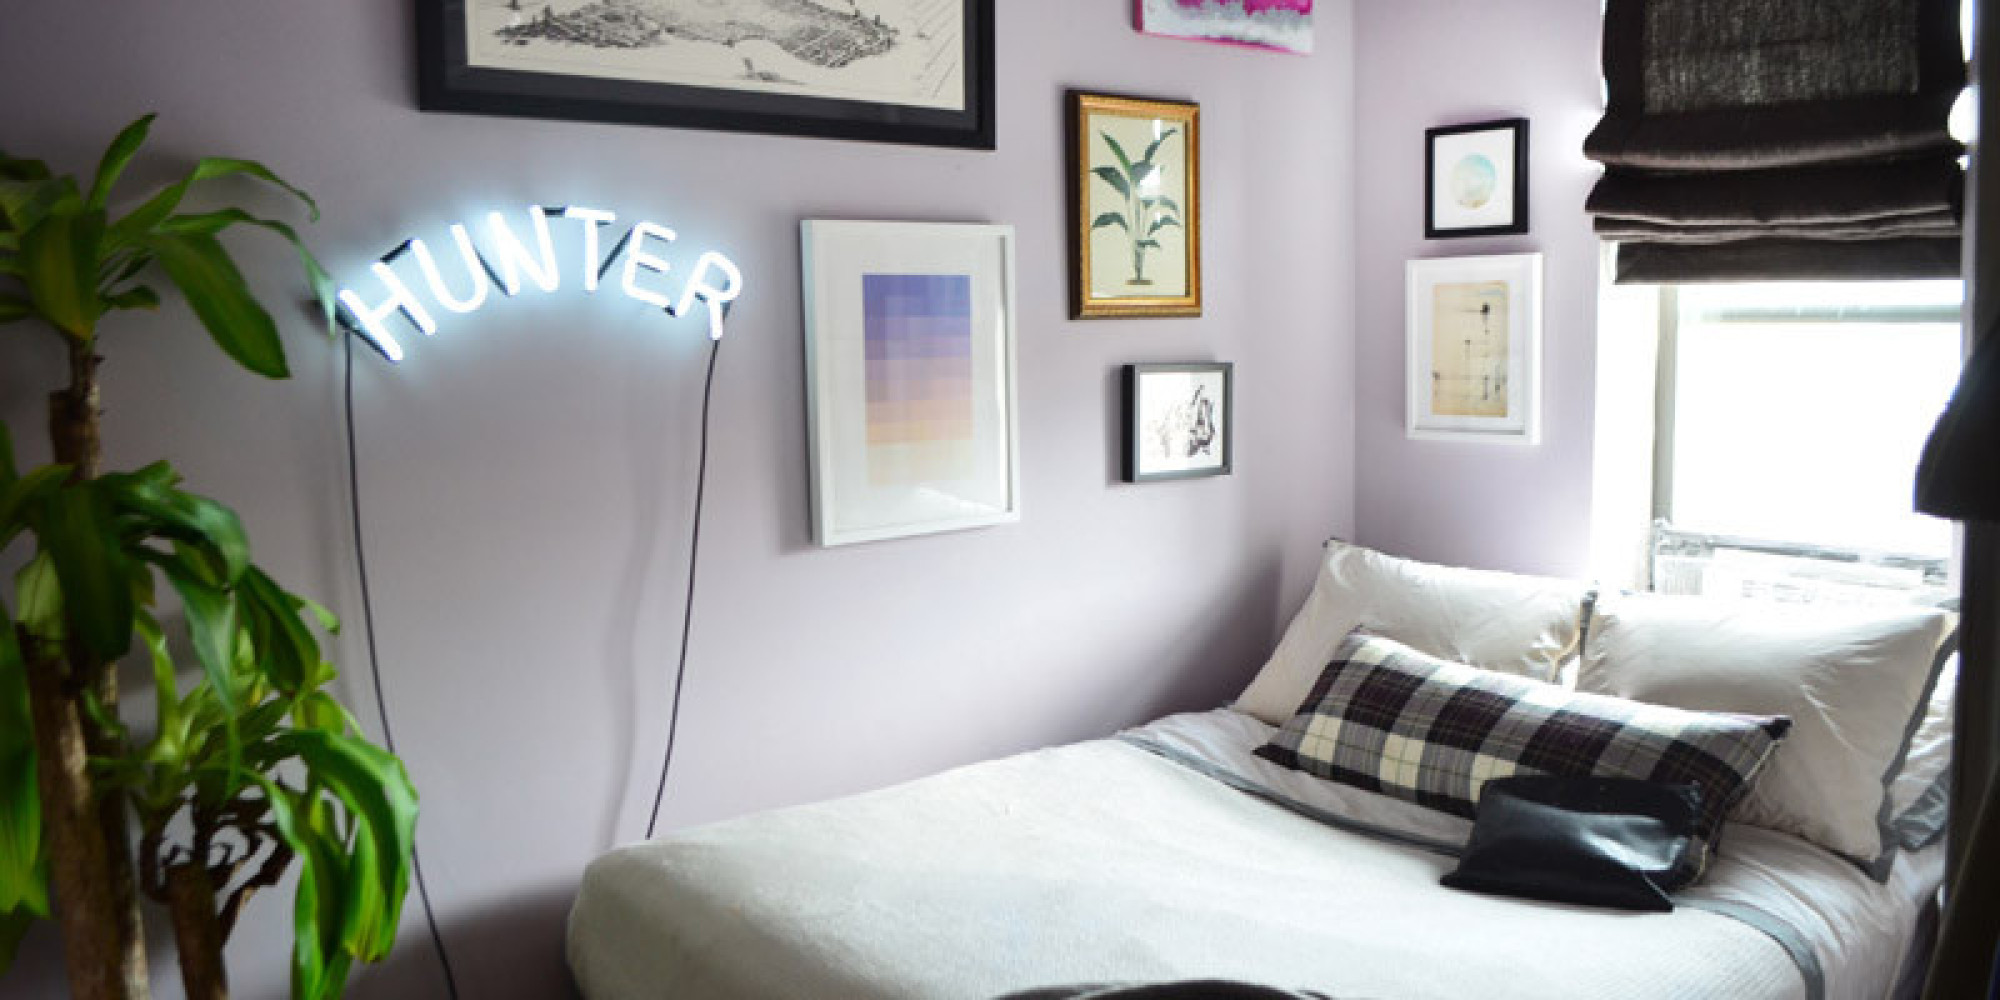 Small bedroom tricks from a real life tiny home huffpost for Tiny home furnishings